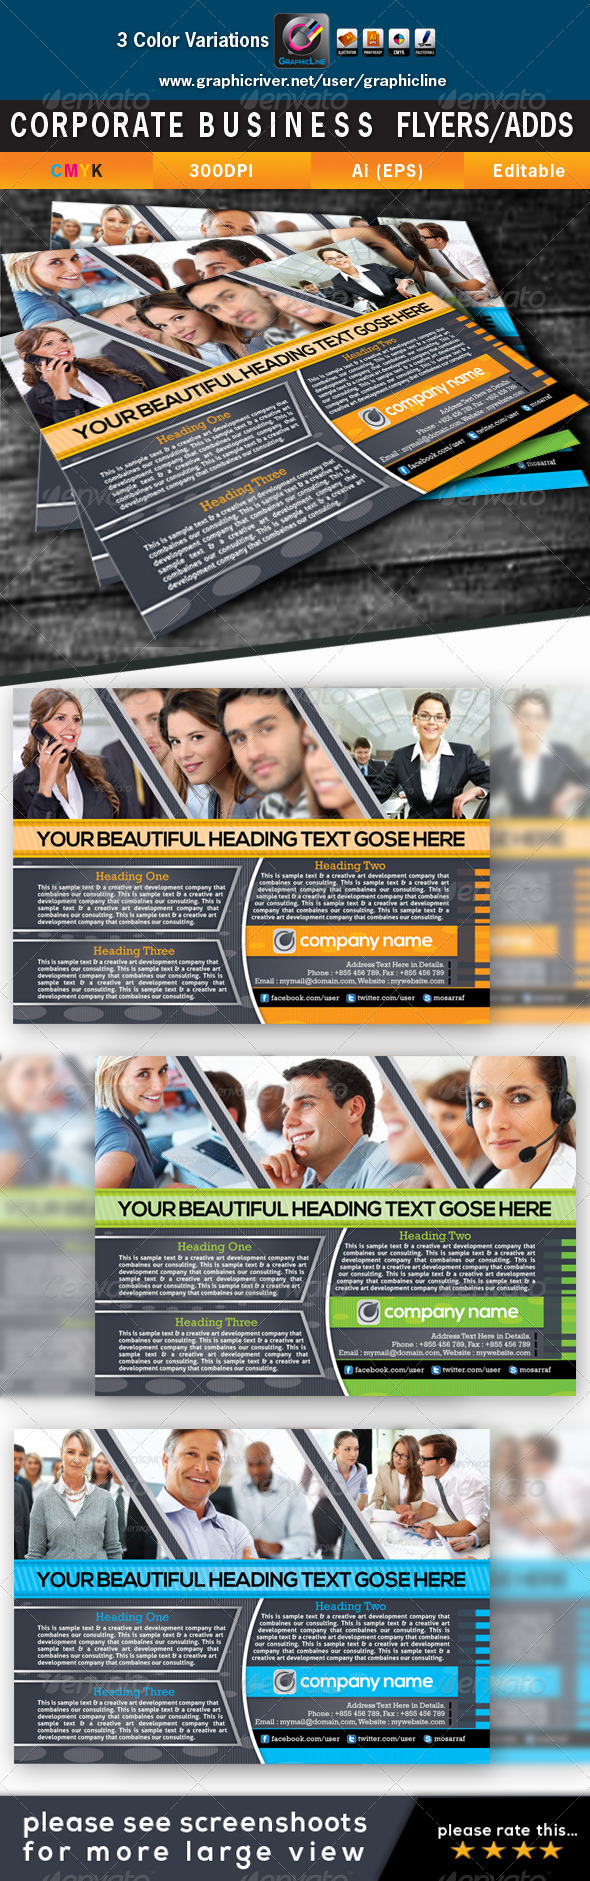 GraphicRiver Corporate Business Flyers Adds 4423663